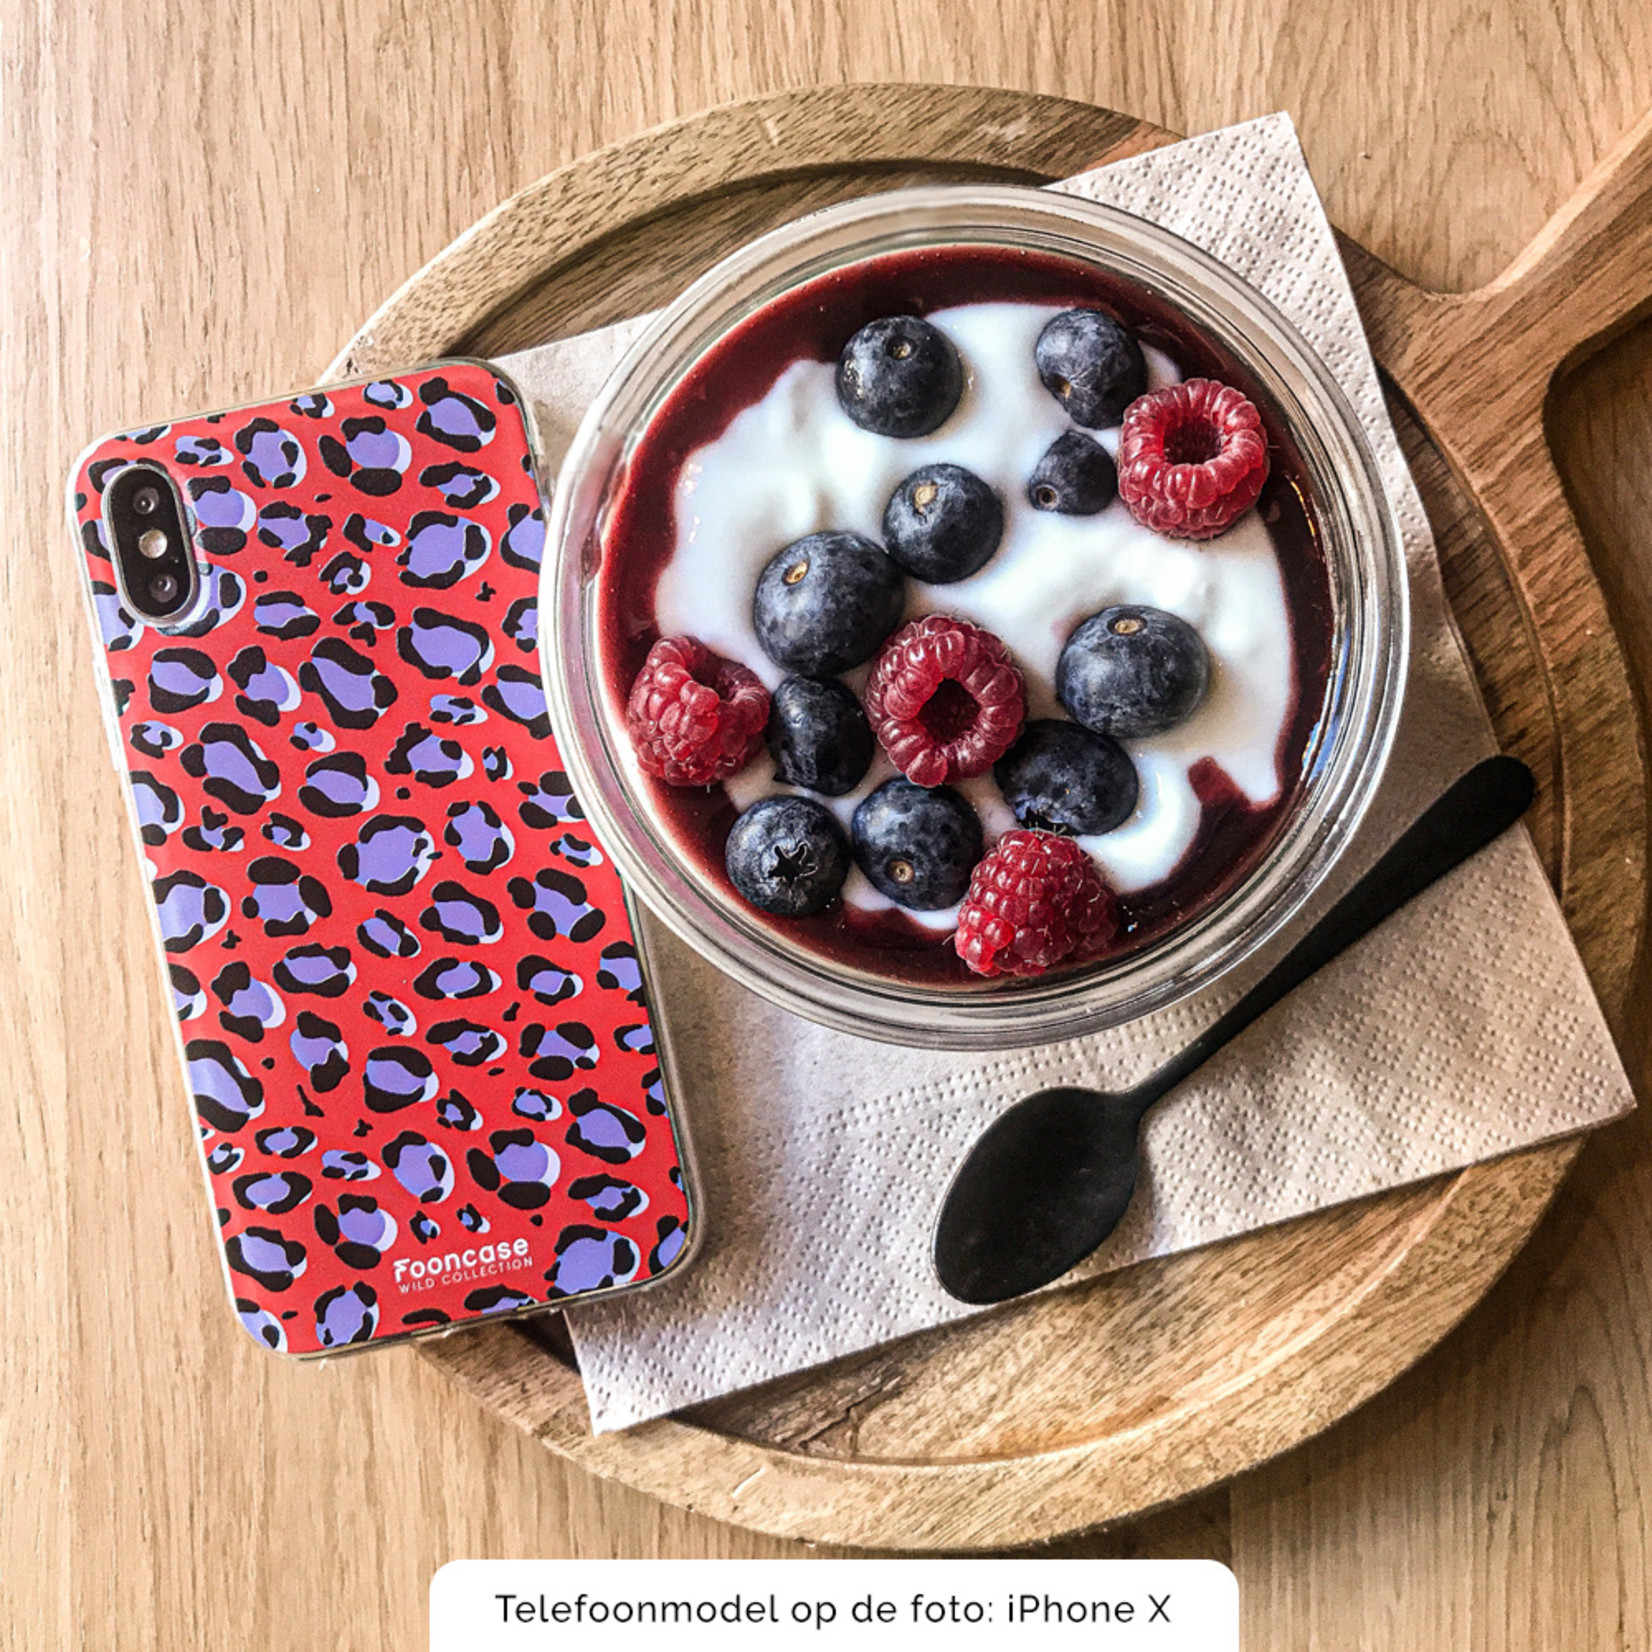 FOONCASE iPhone 6 Plus hoesje TPU Soft Case - Back Cover - WILD COLLECTION / Luipaard / Leopard print / Rood